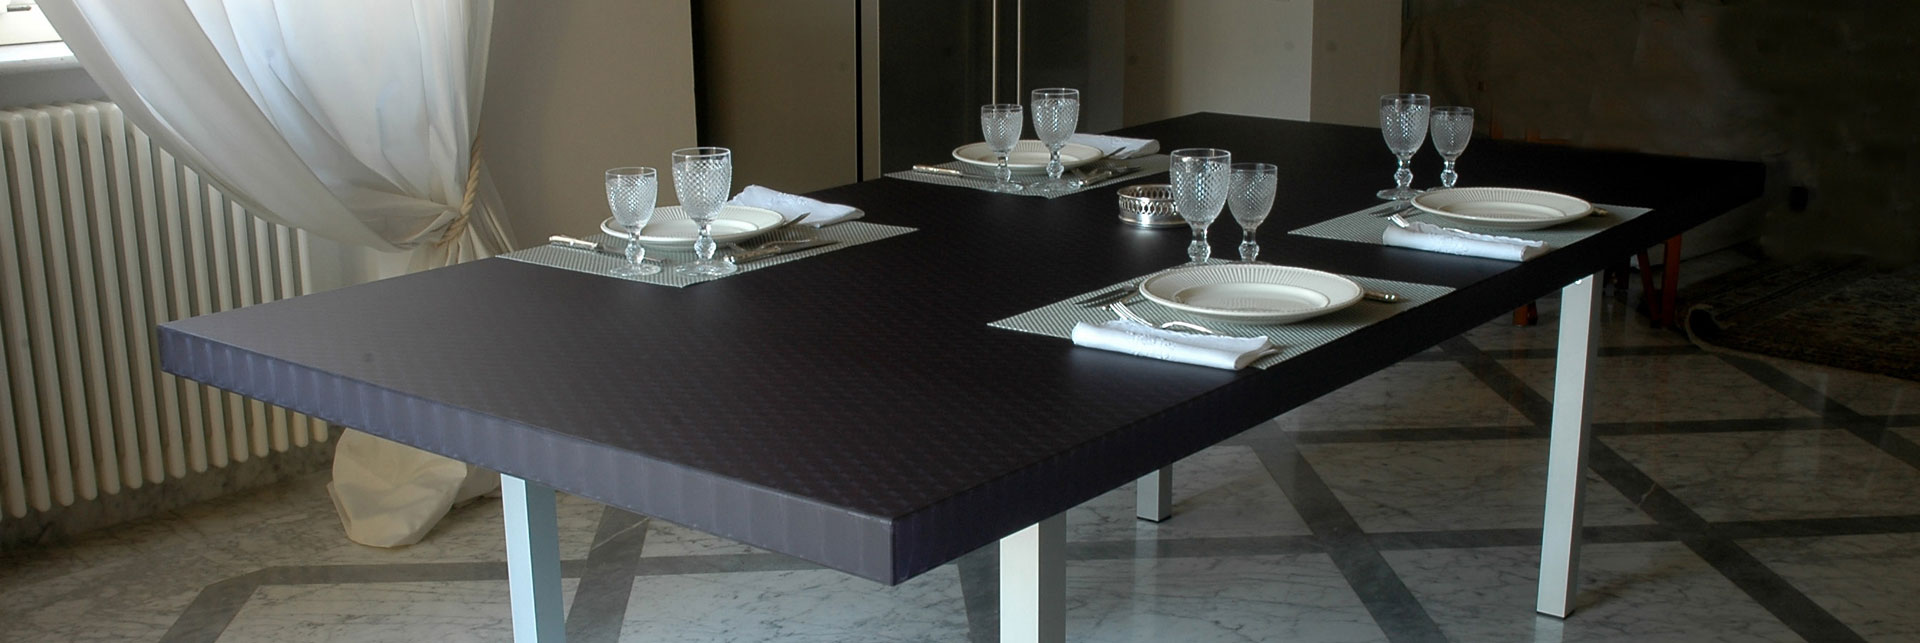 Private Home, dining table